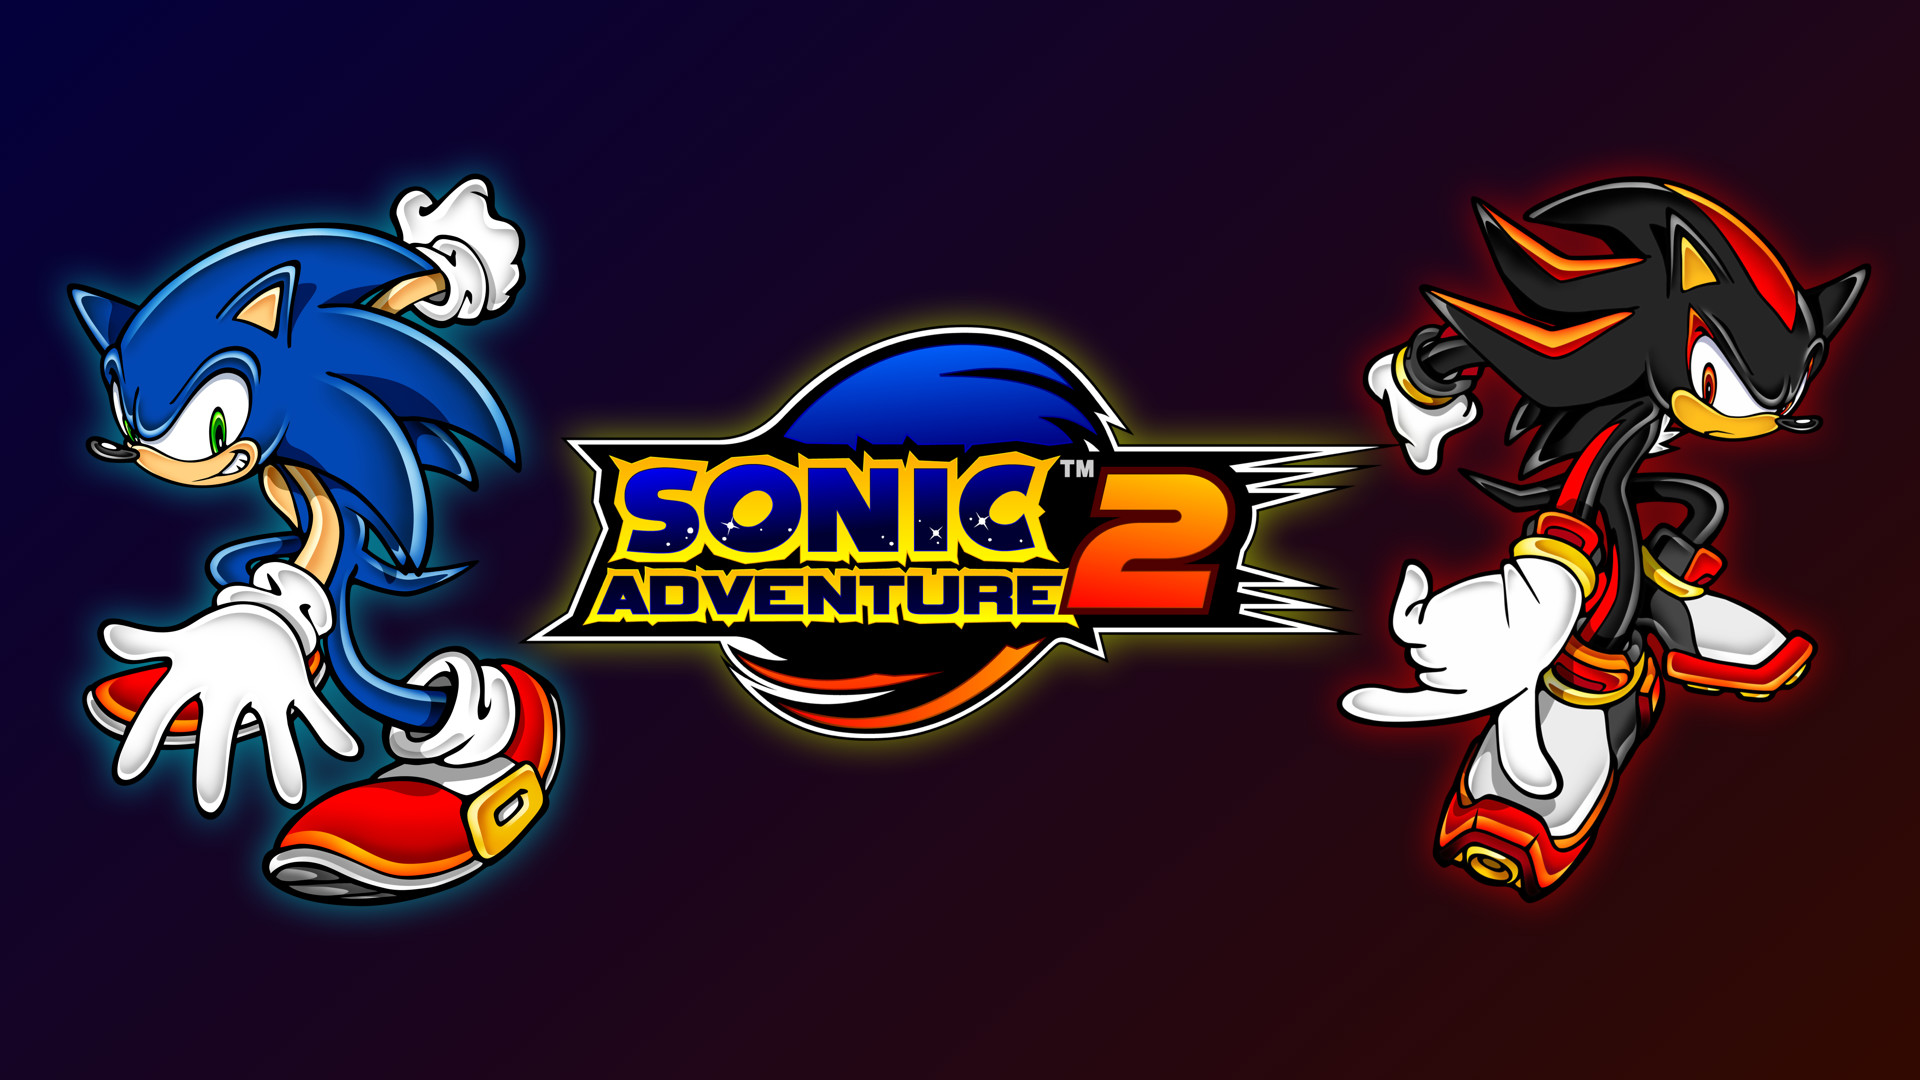 1920x1080 Sonic Adventure 2 Wallpaper